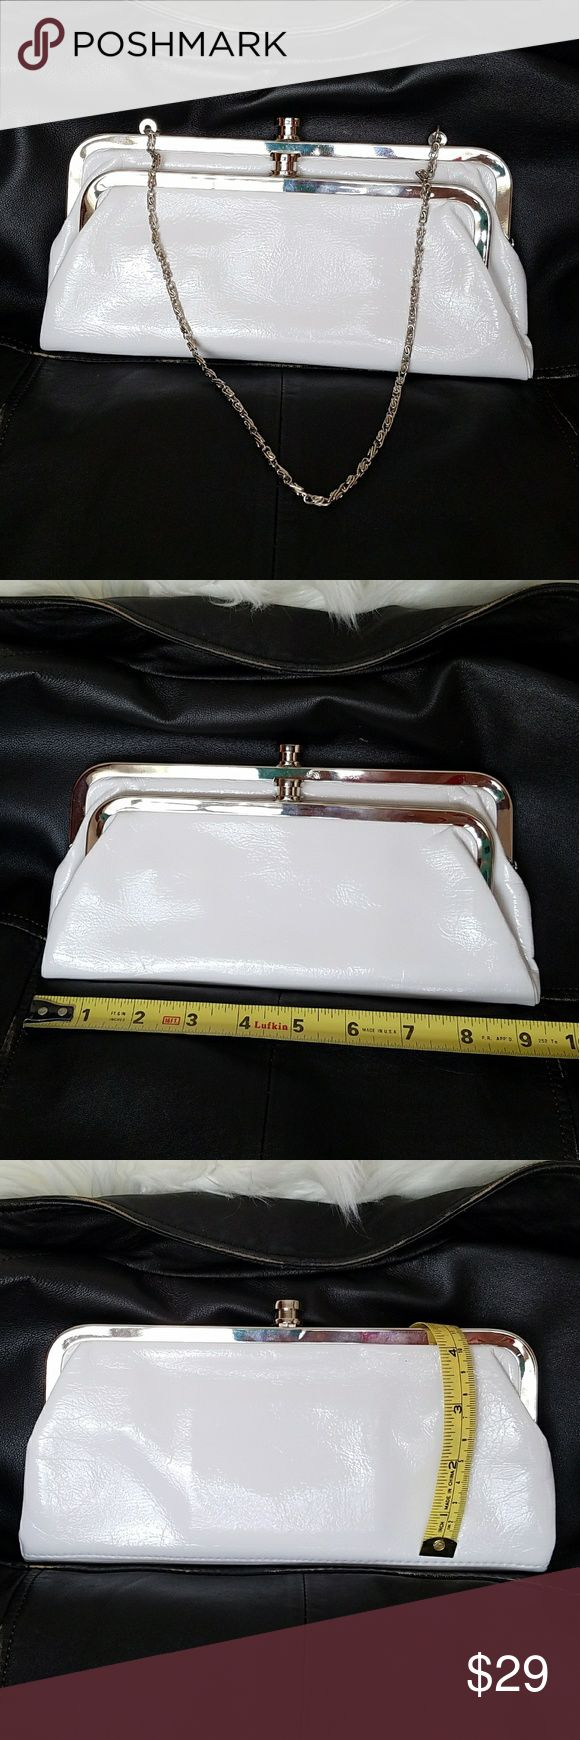 """Patent leather evening bag White House Black Market white patent leather evening clutch with hidden metal chain strap. Two separate bauble snap close sections. Hidden magnets close the two sections together. 9"""" x 4.5"""" and 3.5"""".  Used once, EUC, no stains, marks or damage on the inside or outside.  Smoke free home White House Black Market Bags"""